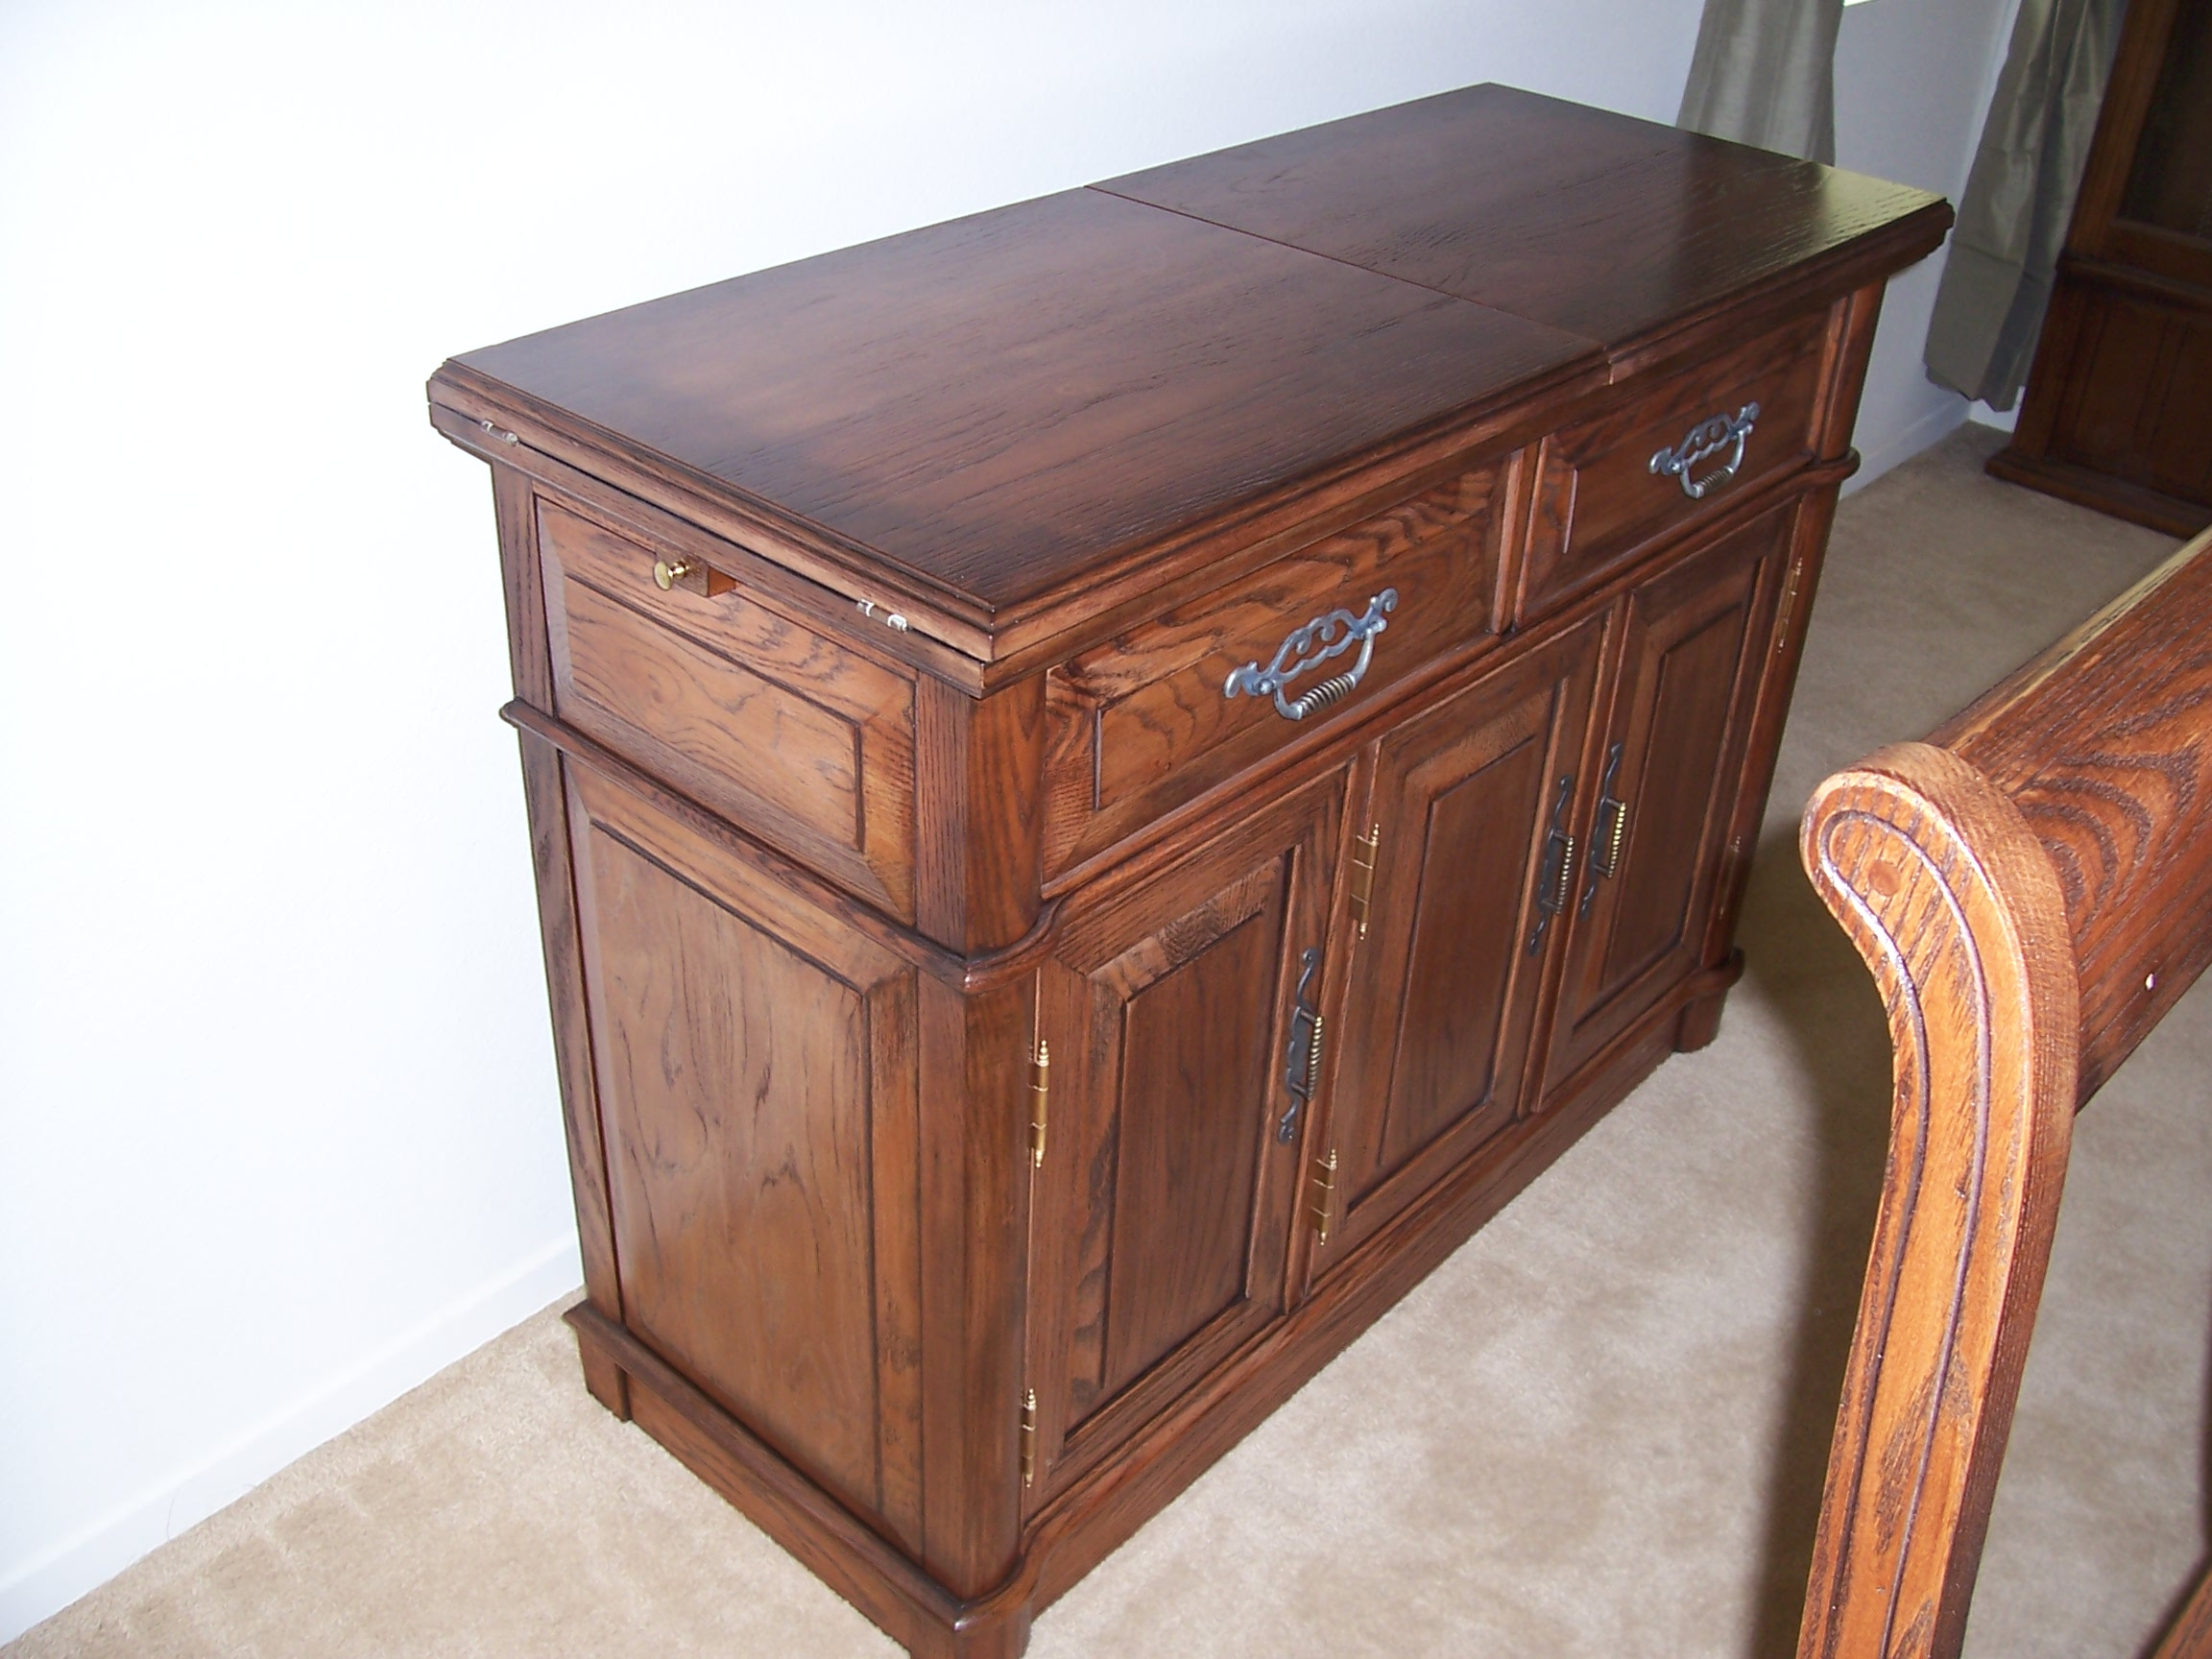 Furniture Refinishing refinishing kitchen table Originally blonde oak this is the serving buffet from a dining set inherited from this young couple s grandparents They made a valiant attempt to refinish